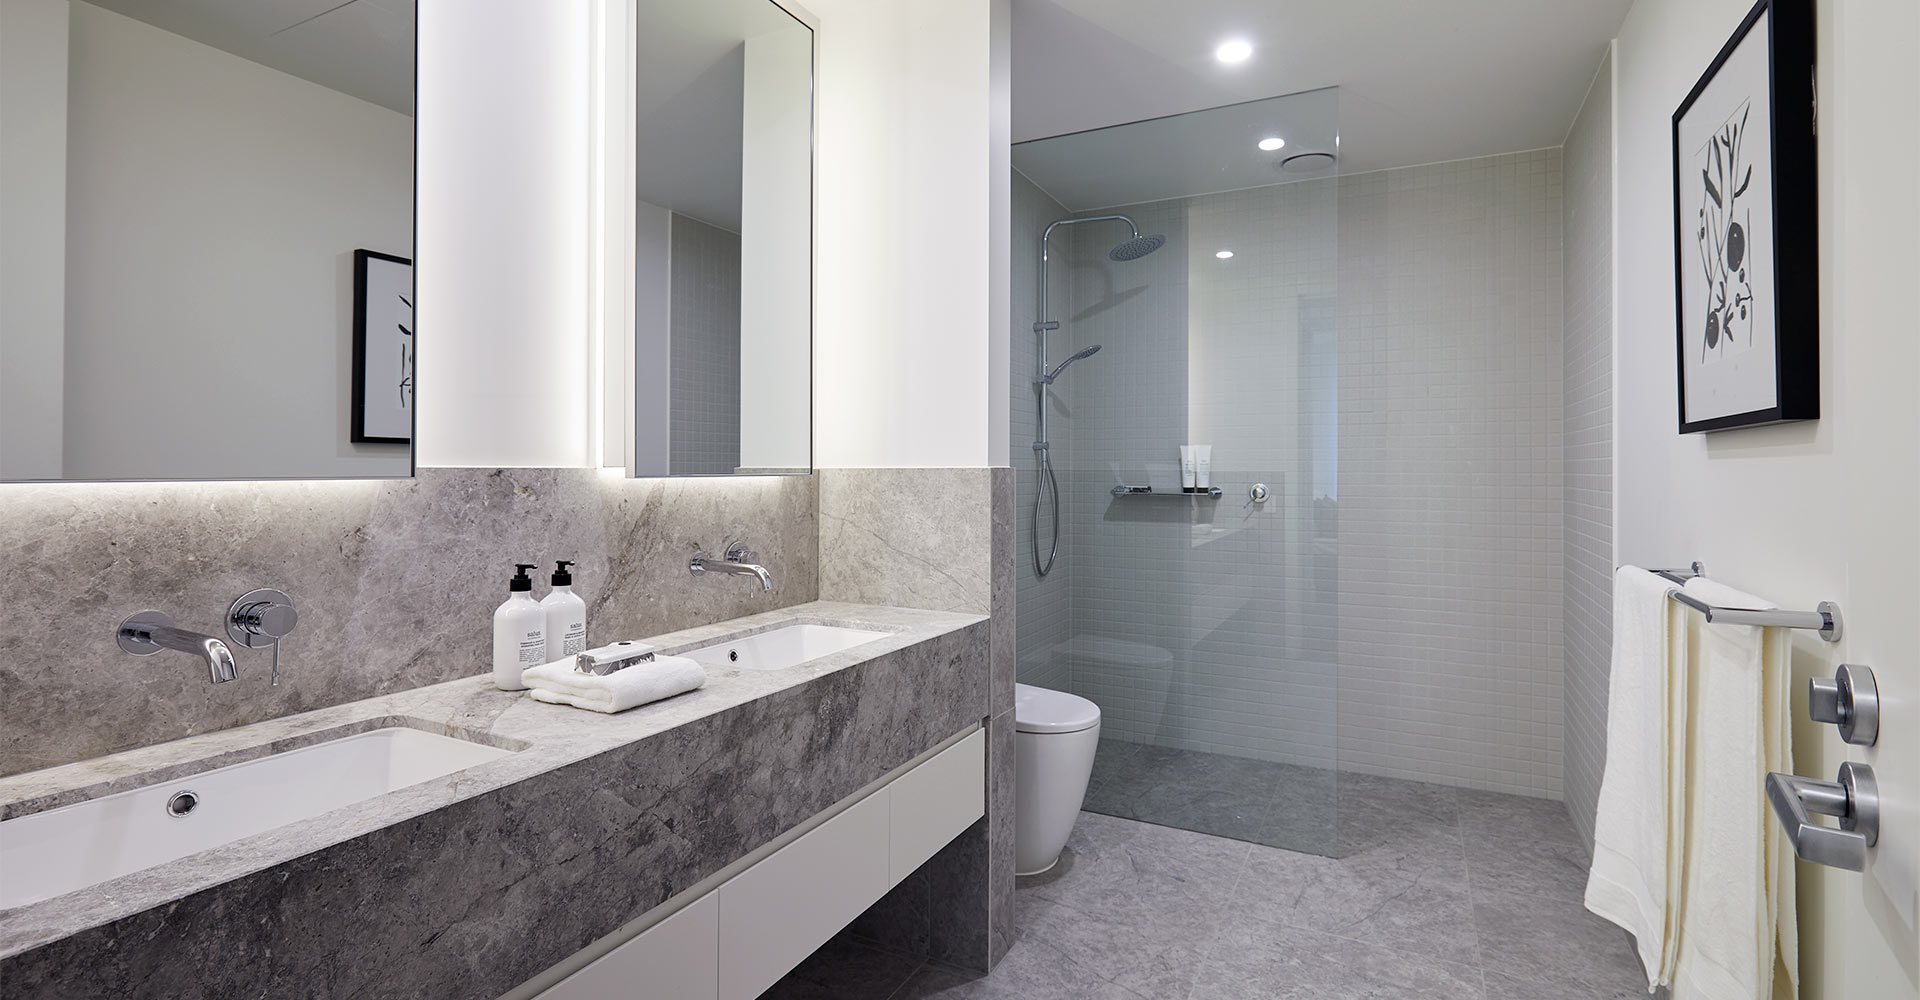 Retirement apartment bathroom with premium finishes at Pavilions Blackburn Lake